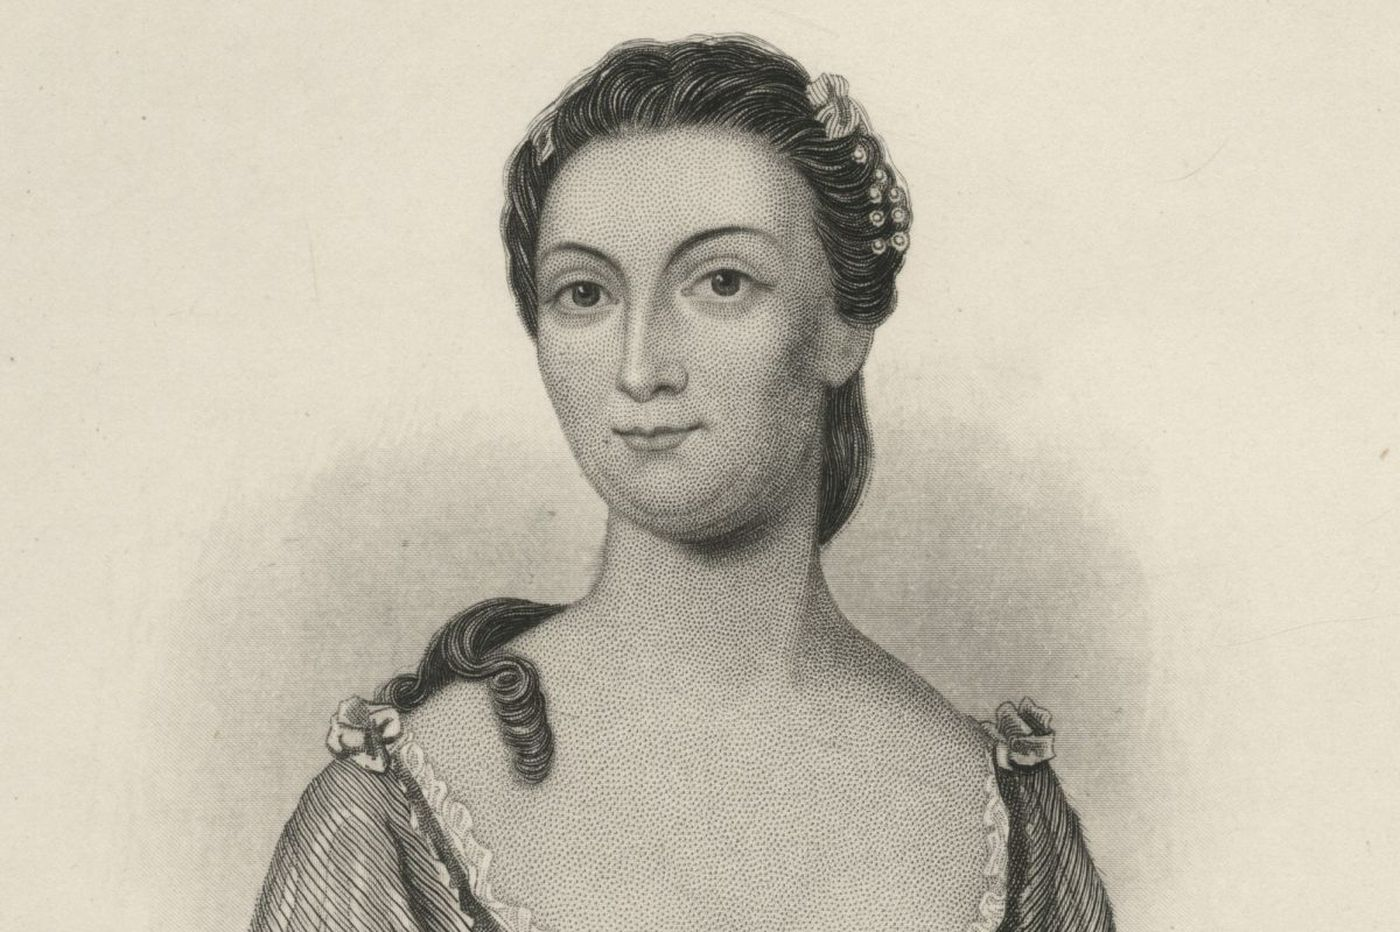 Count women among the Revolutionary War's patriots   Philly History